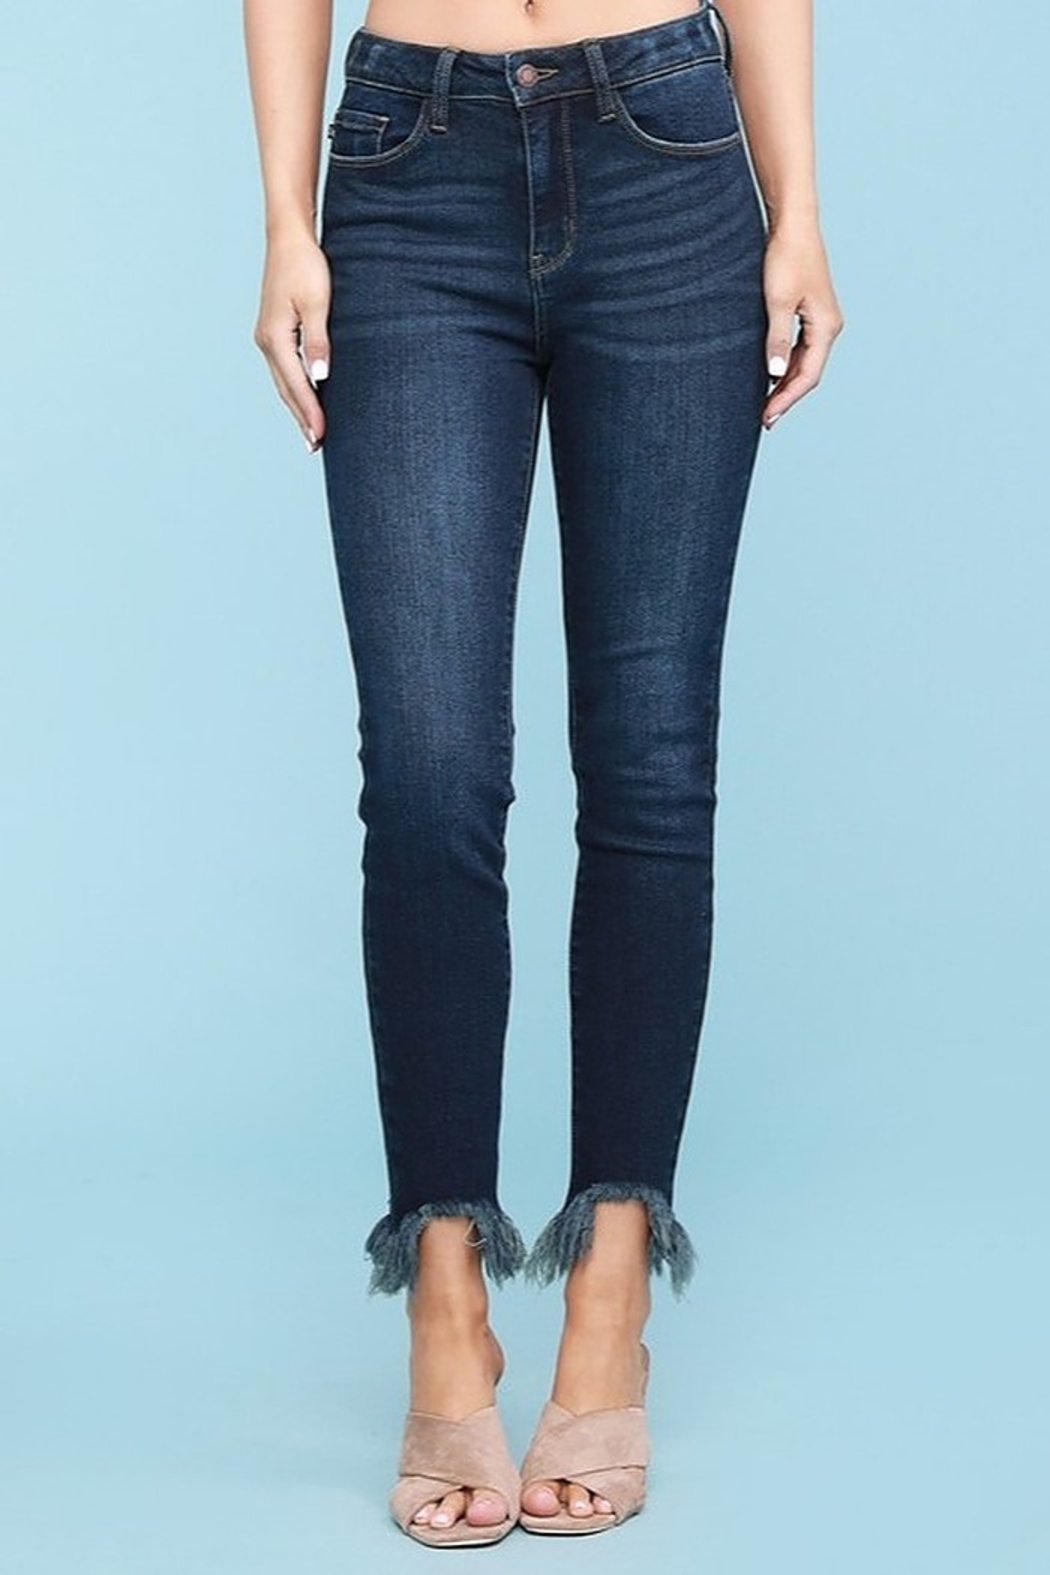 Judy Blue Shark Bite Skinny Jeans - Plus Size - Front Full Image